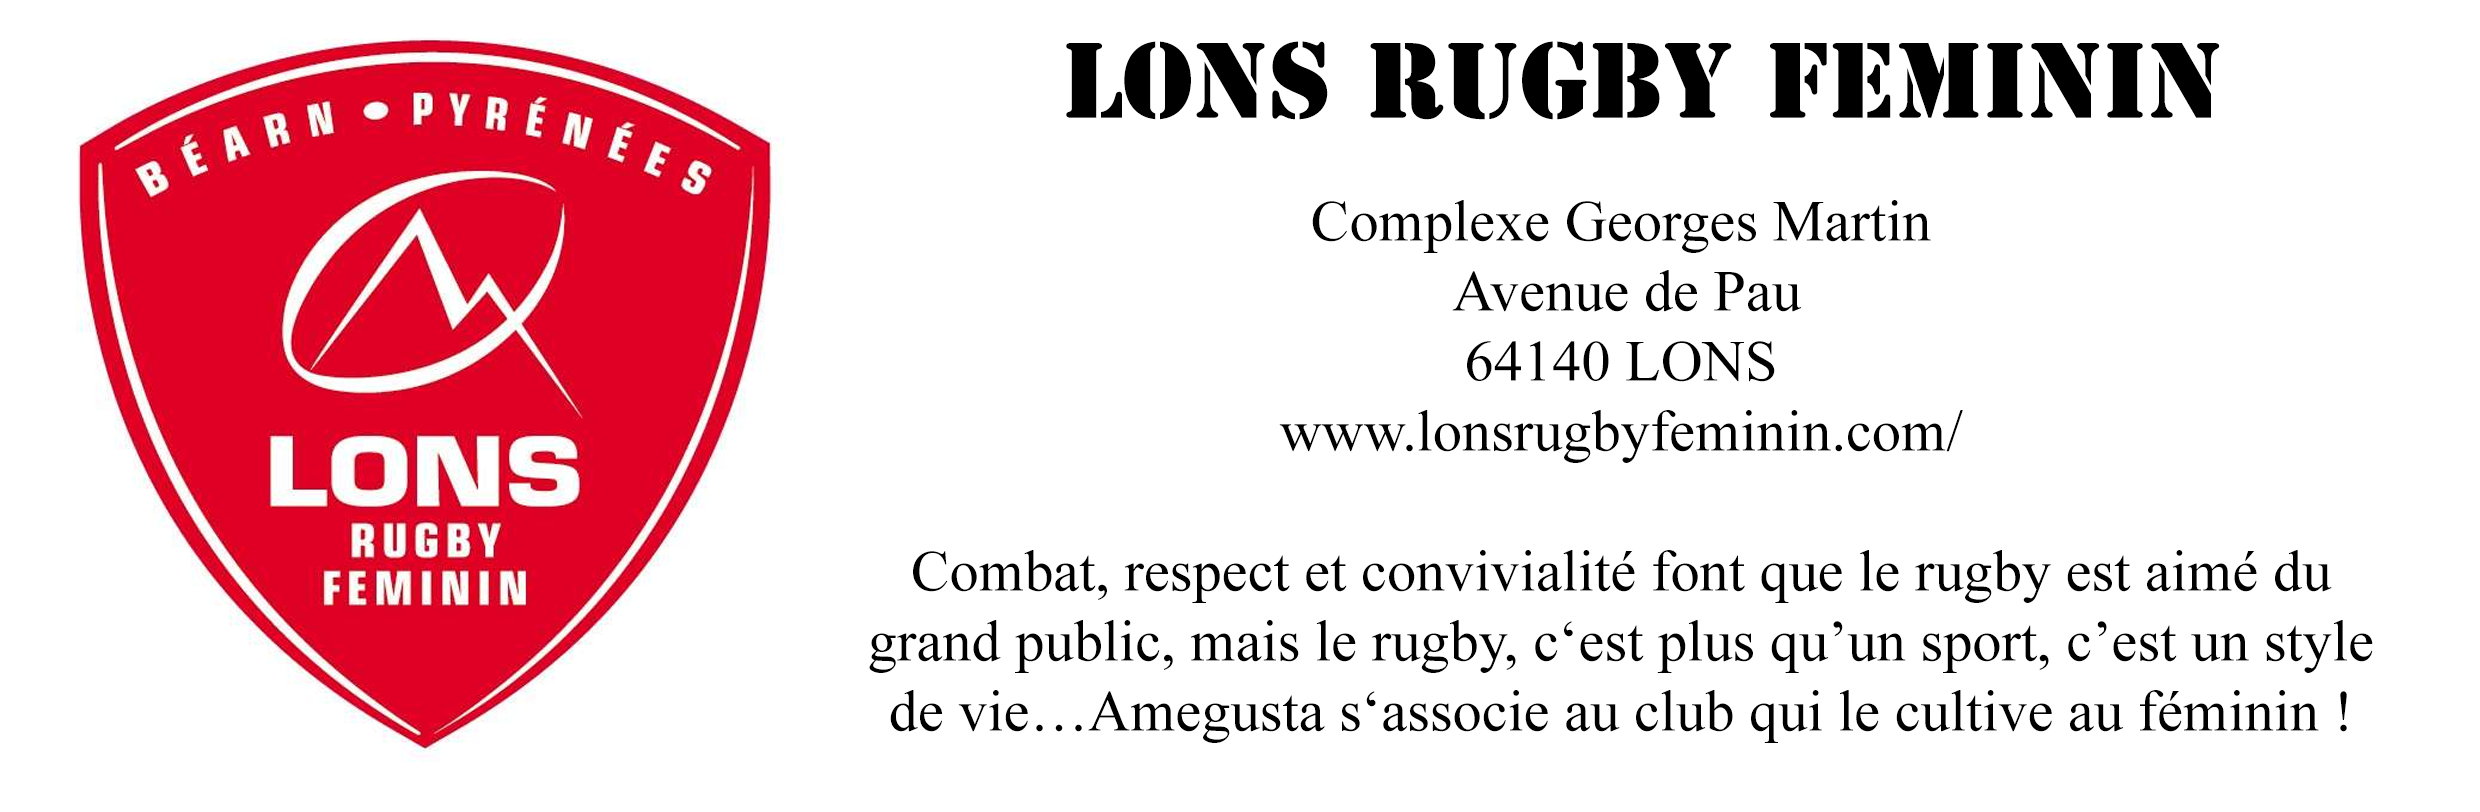 lons rugby feminin